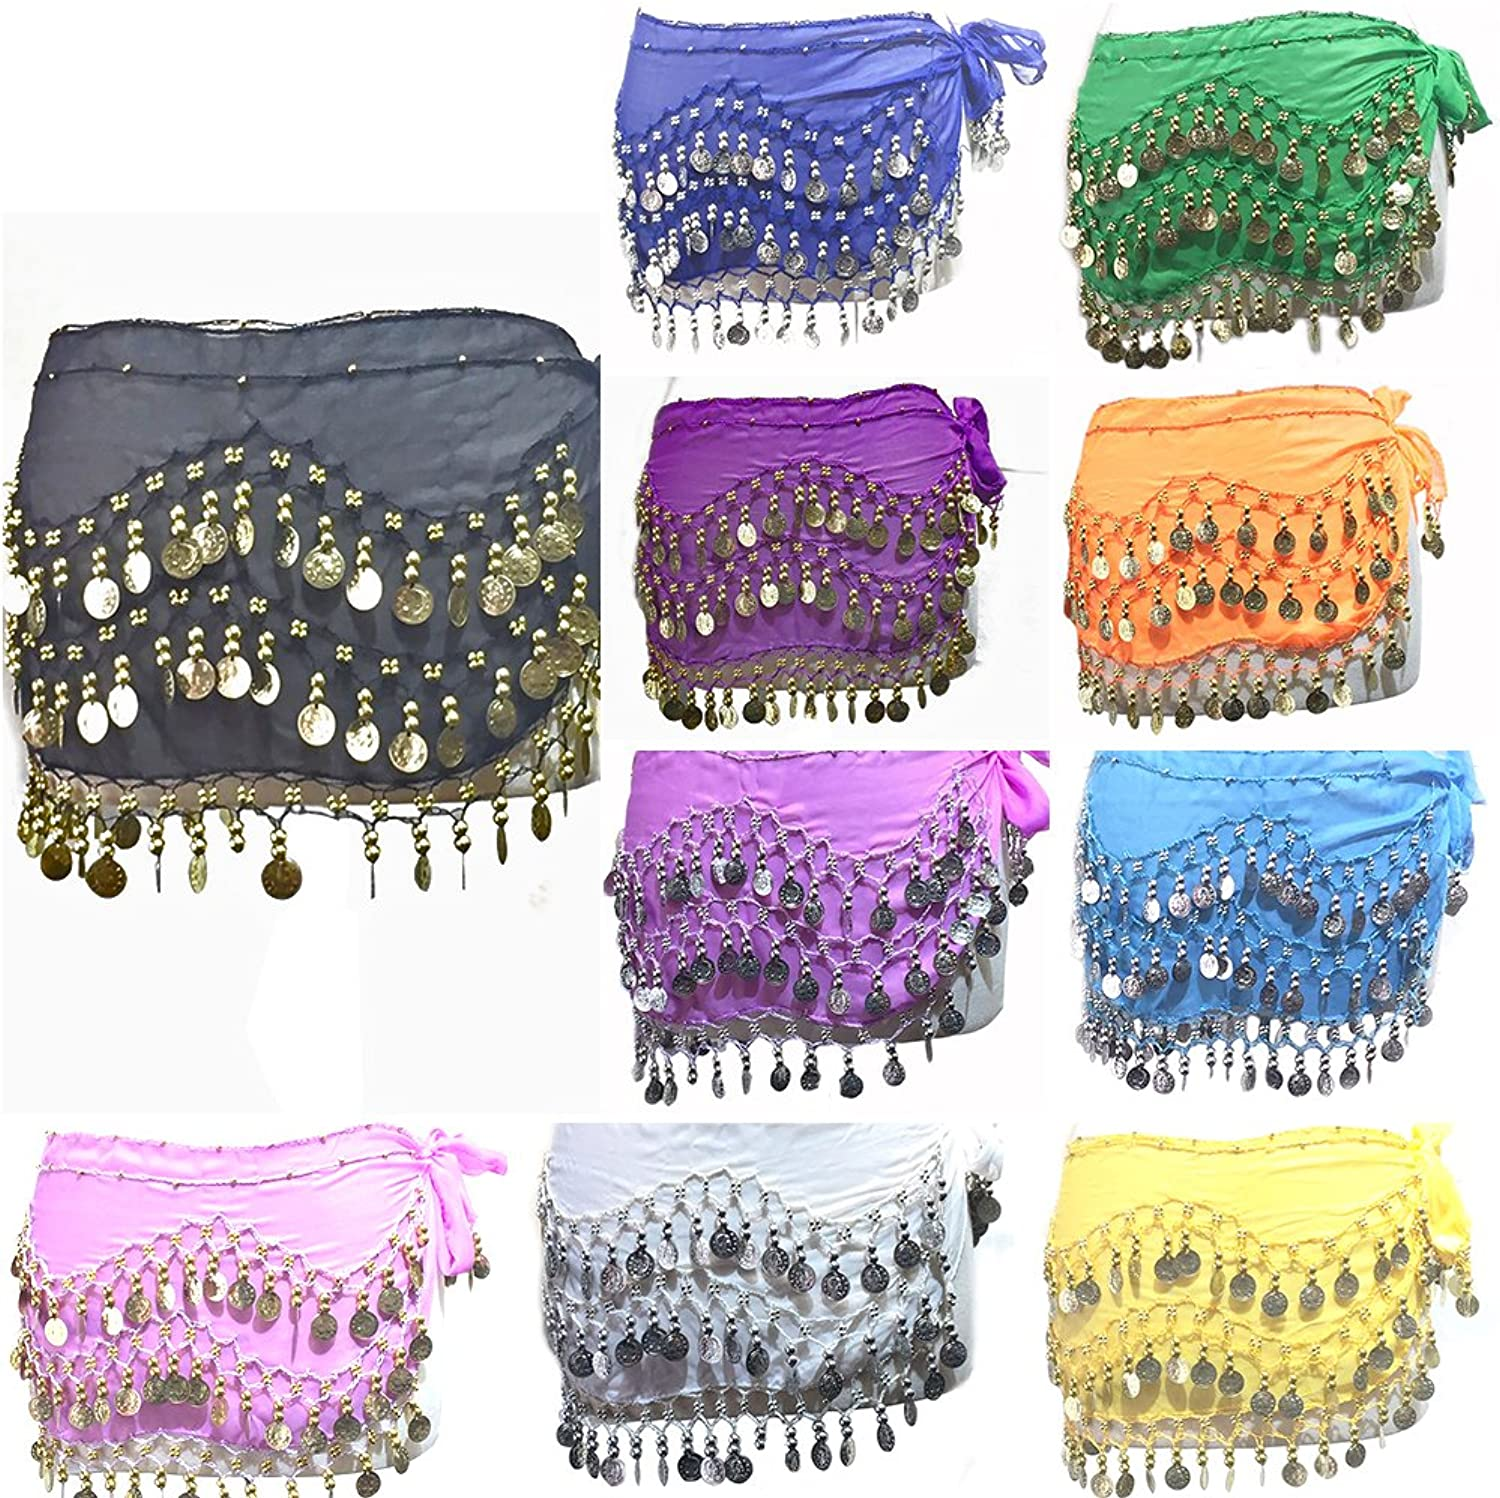 REINDEAR 12 Pcs Belly Dance Skirt Scarf Hip Wrap Belt Wholesale Low Price Voile Coins US Seller